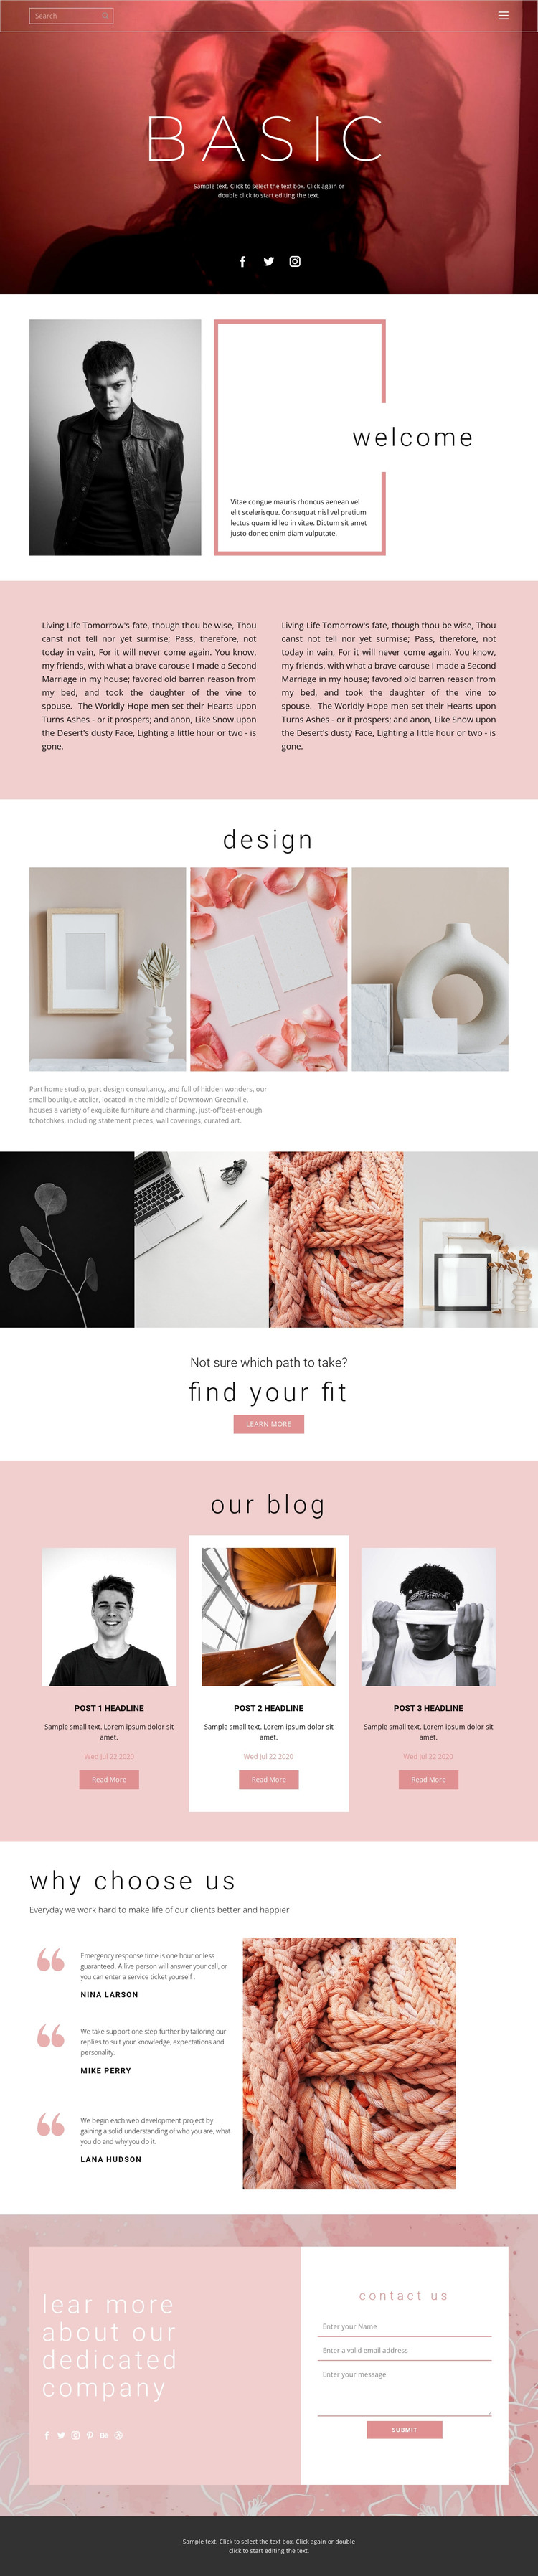 Fashion trends this year HTML Template